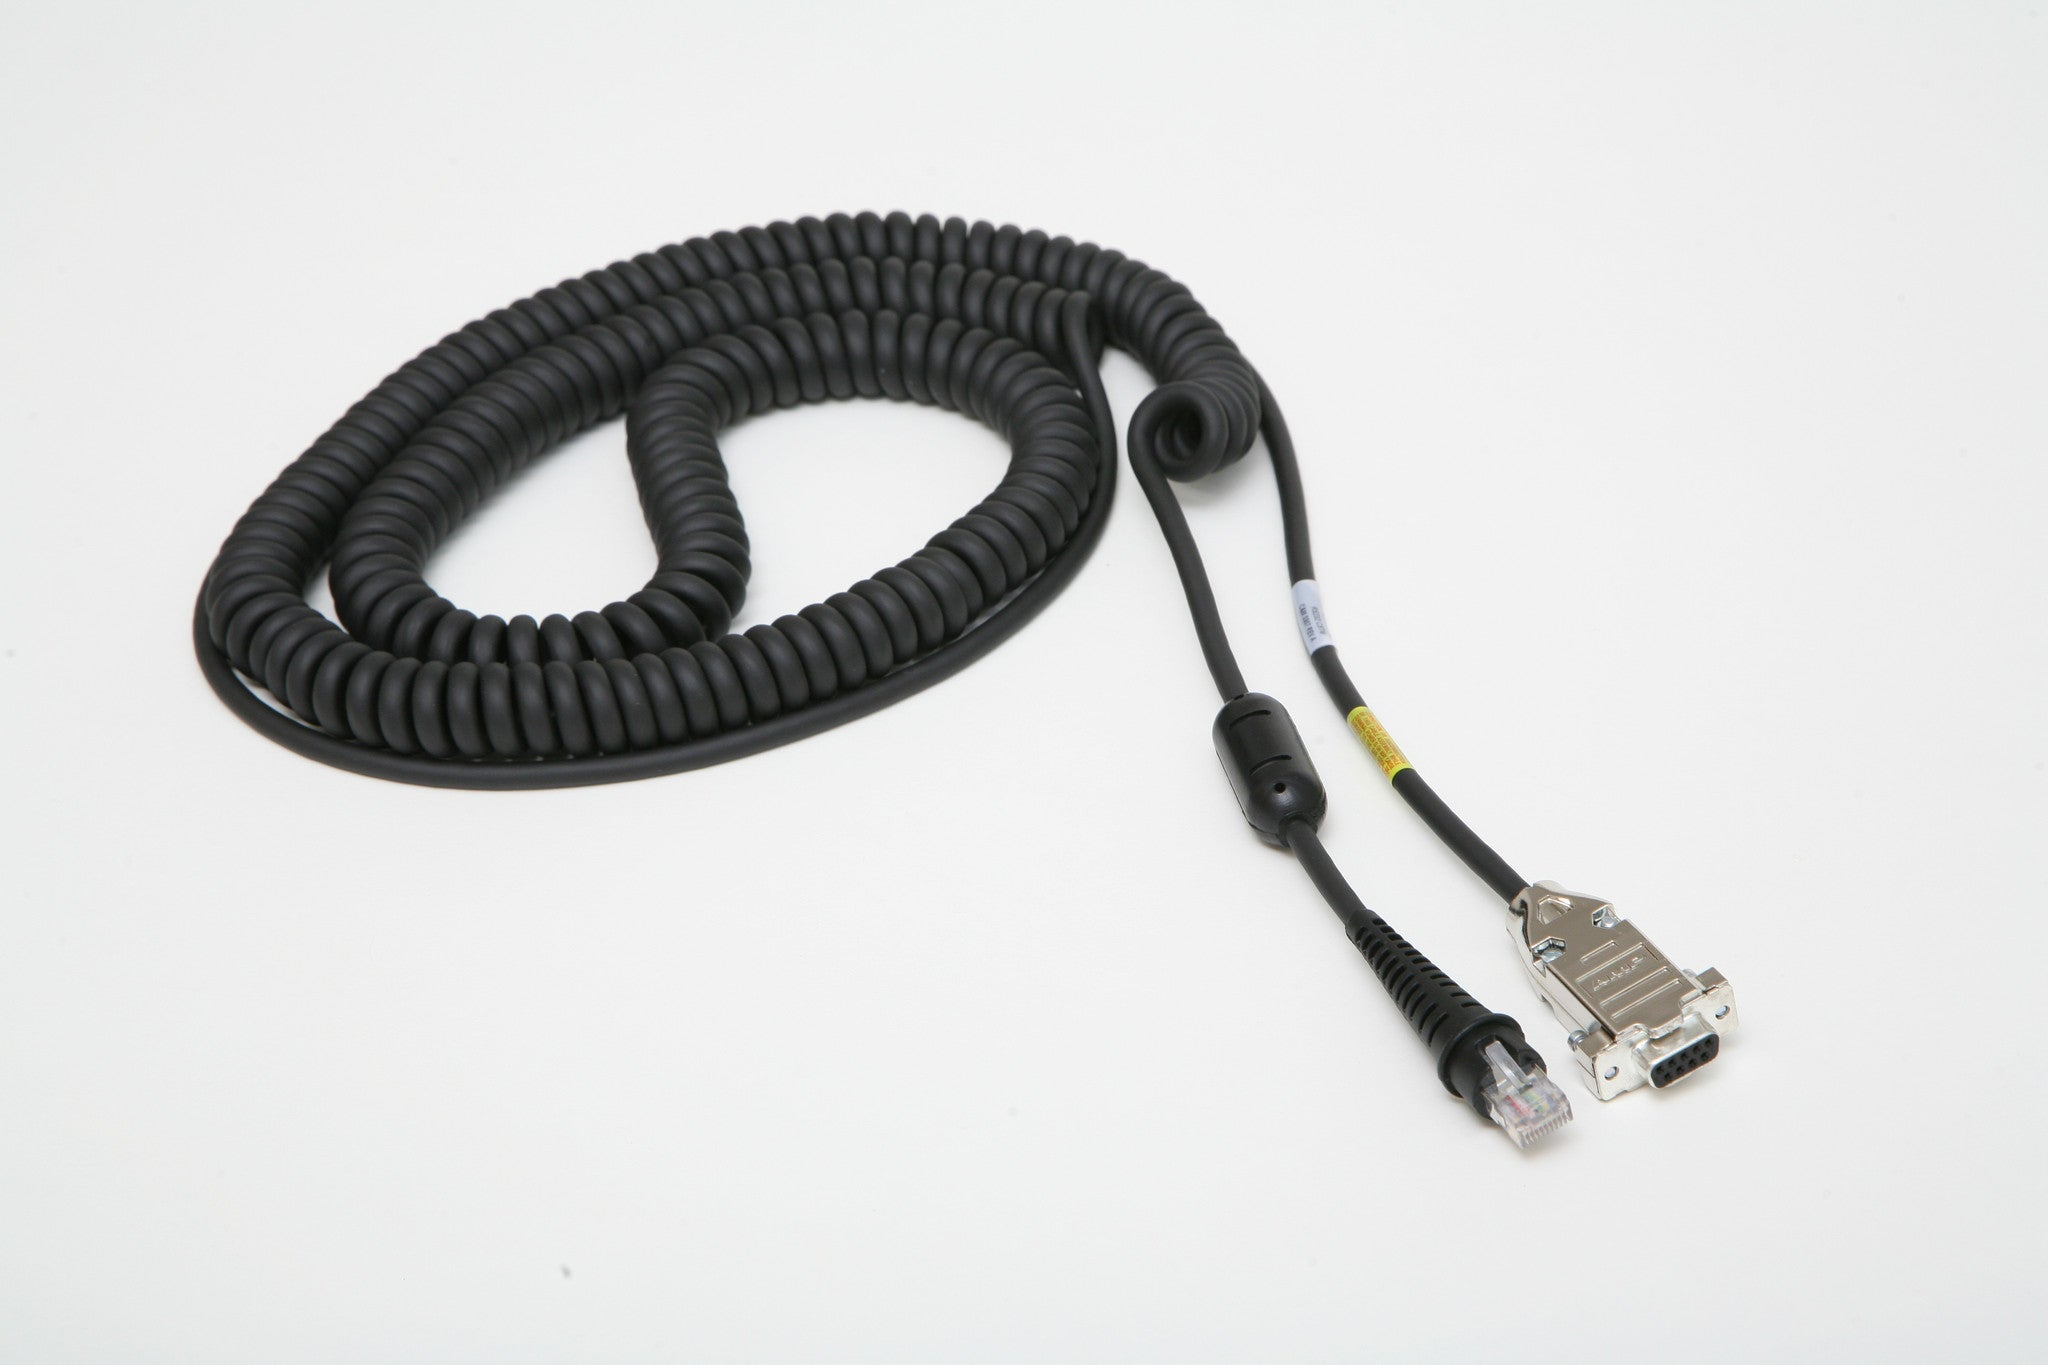 WORLDWIDE BAR CODE SCANNER CABLE P.N. 700-0410, 42206261-01 RS 232 SERIAL CABLE